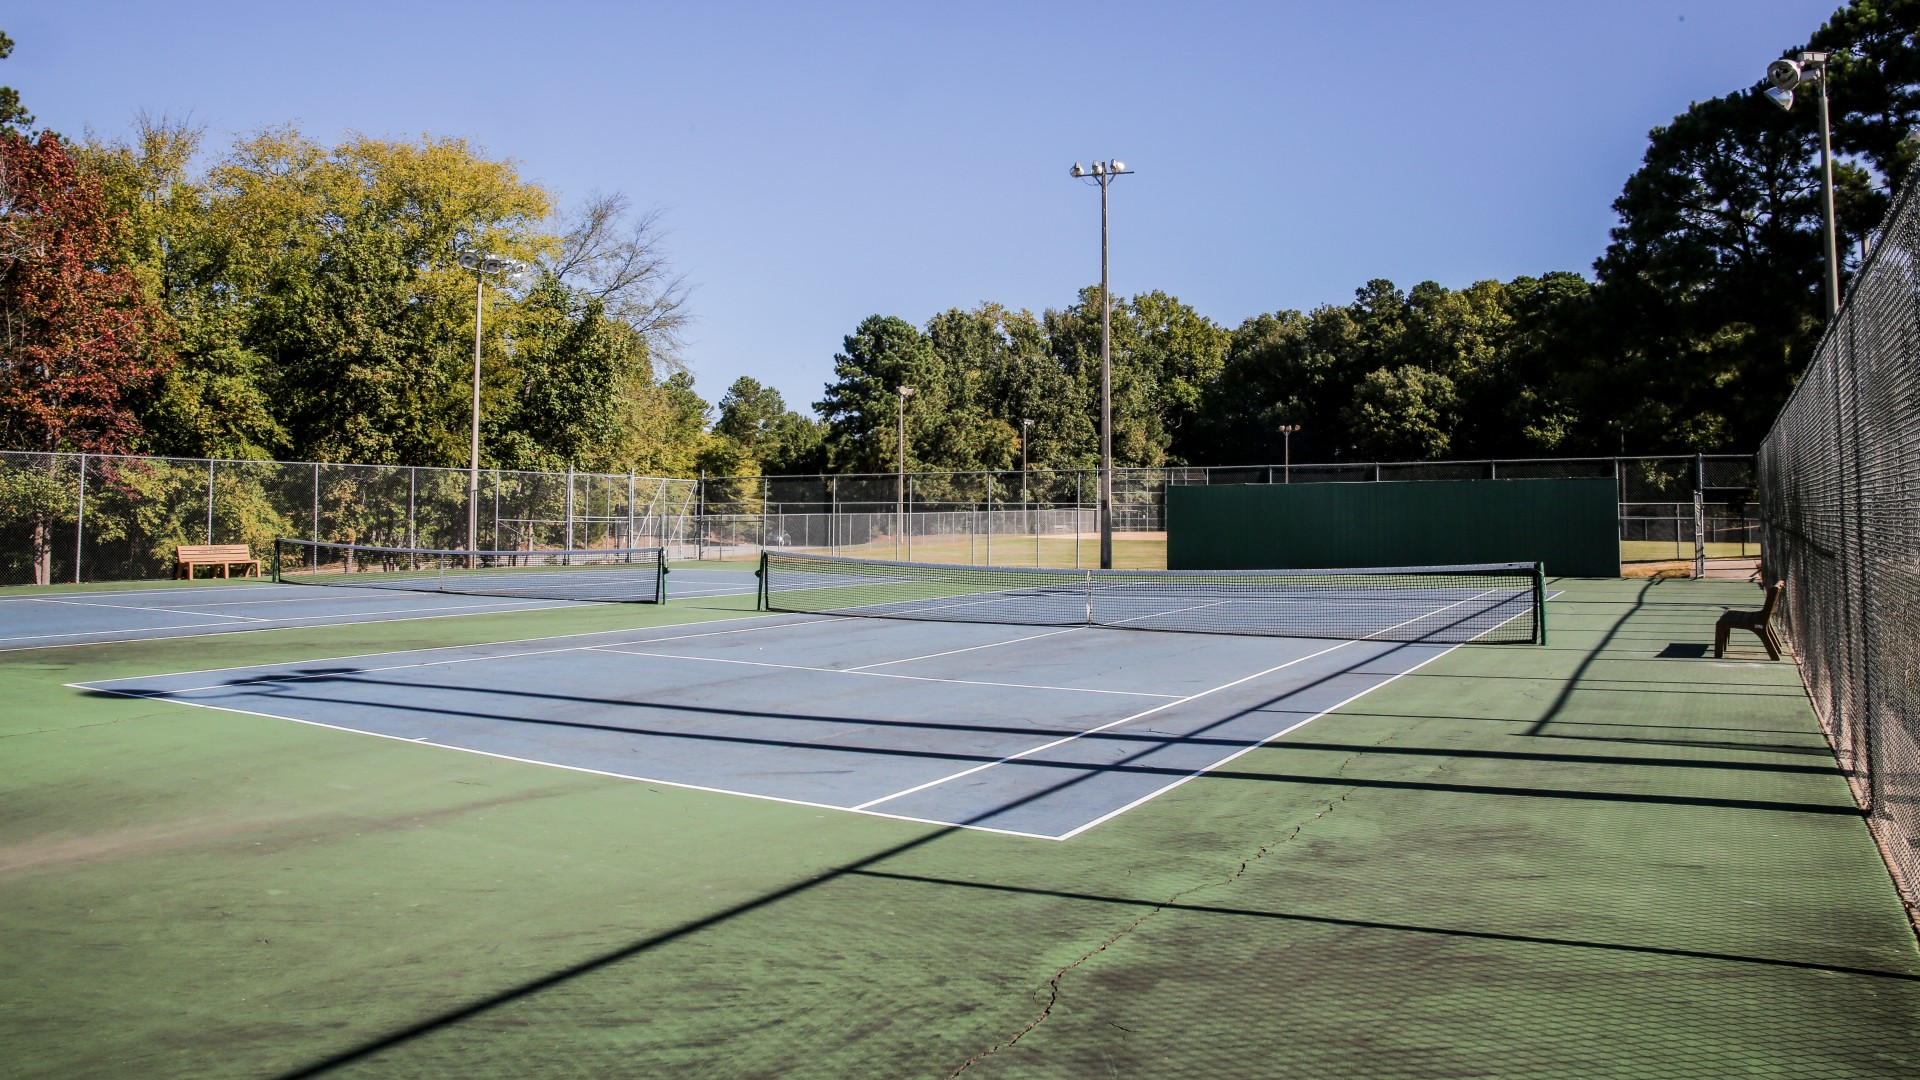 Shot of the four outdoor tennis courts at Green Road Park